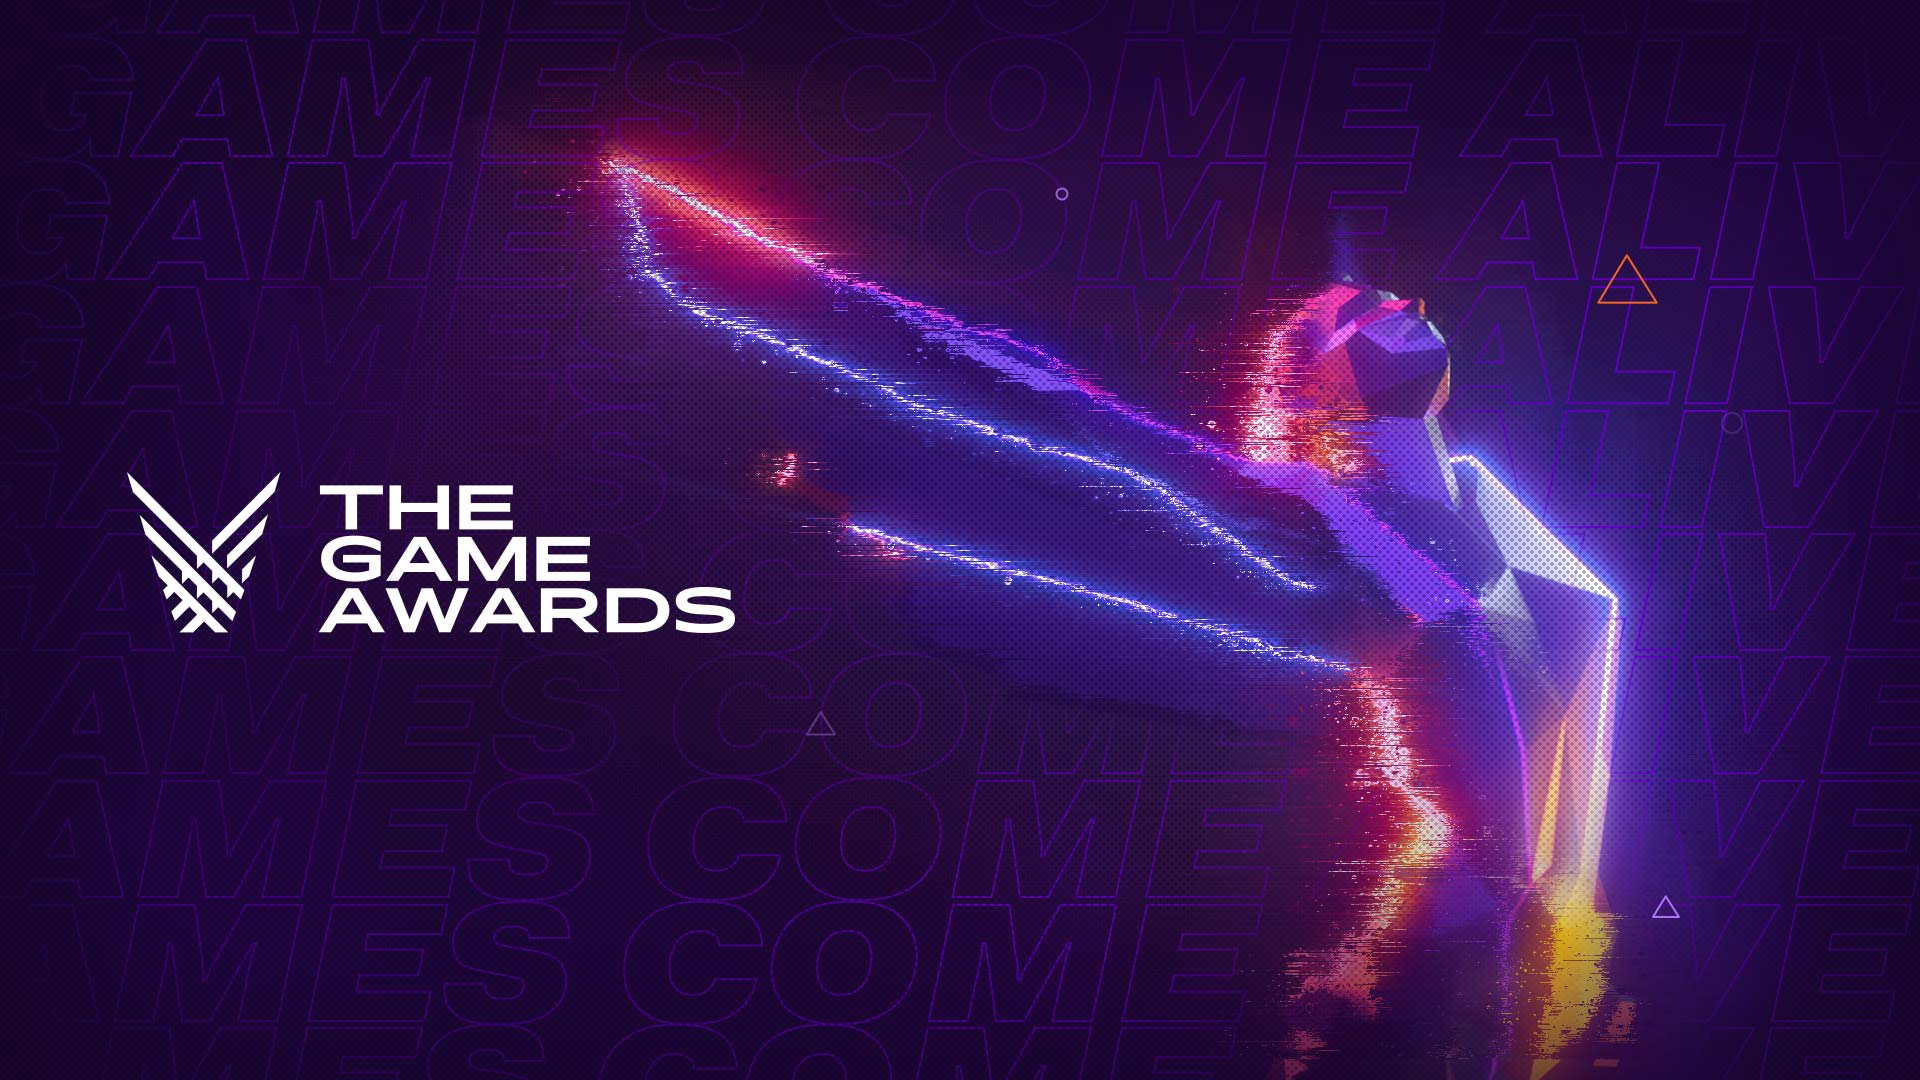 The Game Award 2019